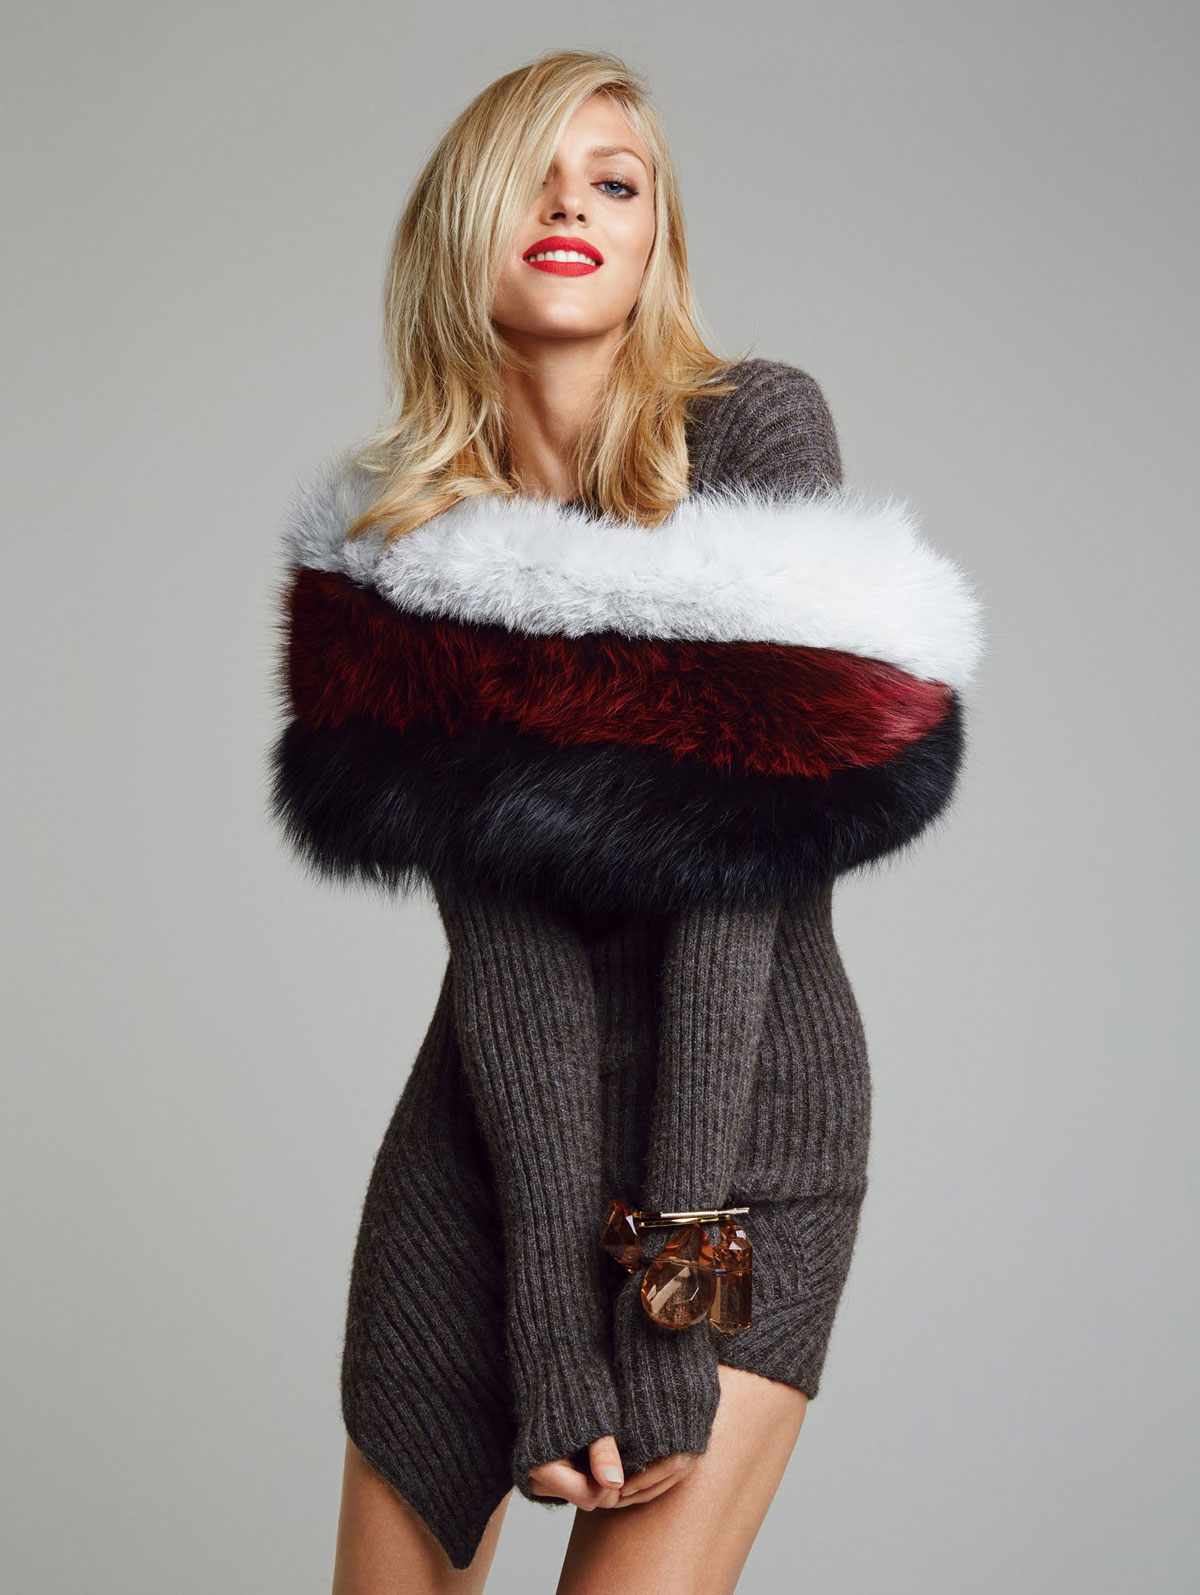 ANJA RUBIK – Vogue M...